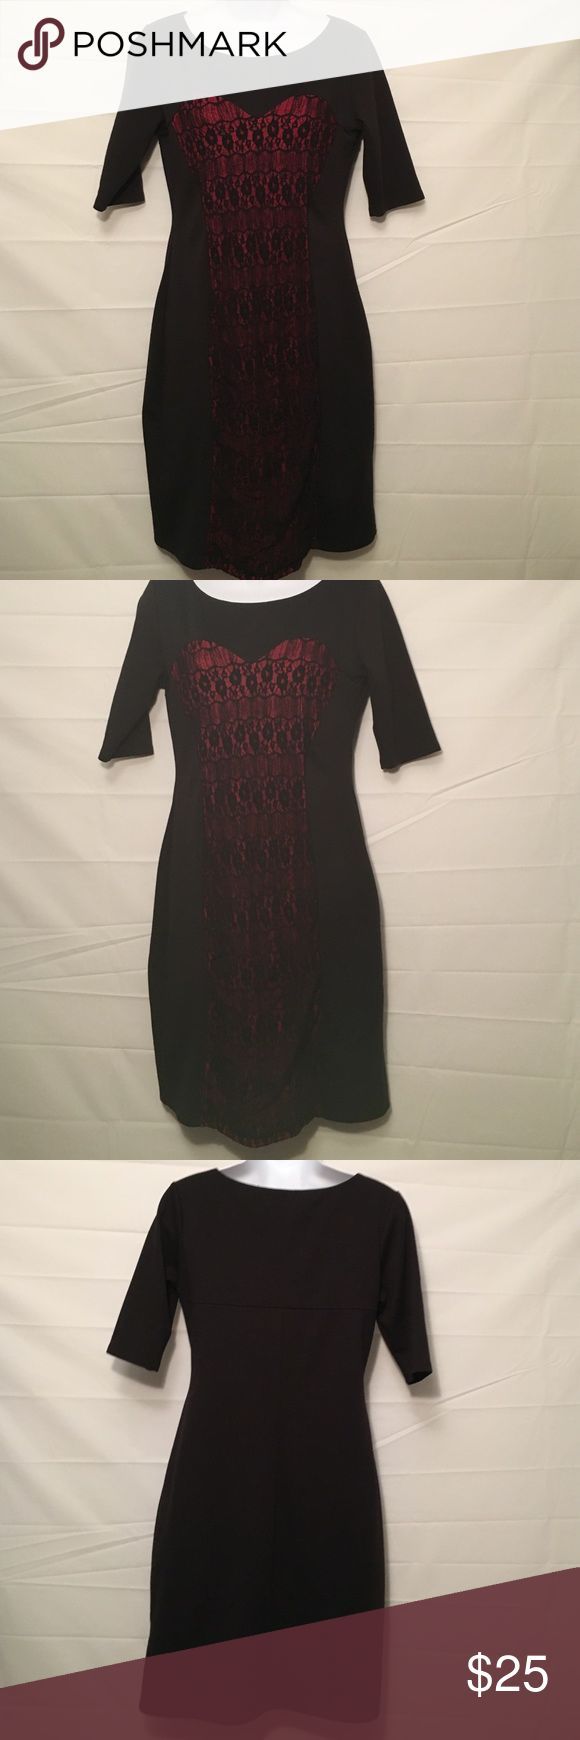 """Tiana B sz Small Gorgeous Black Lace Dress Tiana B size small just gorgeous black dress with lace and pink underneath ....35"""" top to bottom ..... BUNDLE 4 or More SAVE 30%!! Tiana B Dresses Midi"""